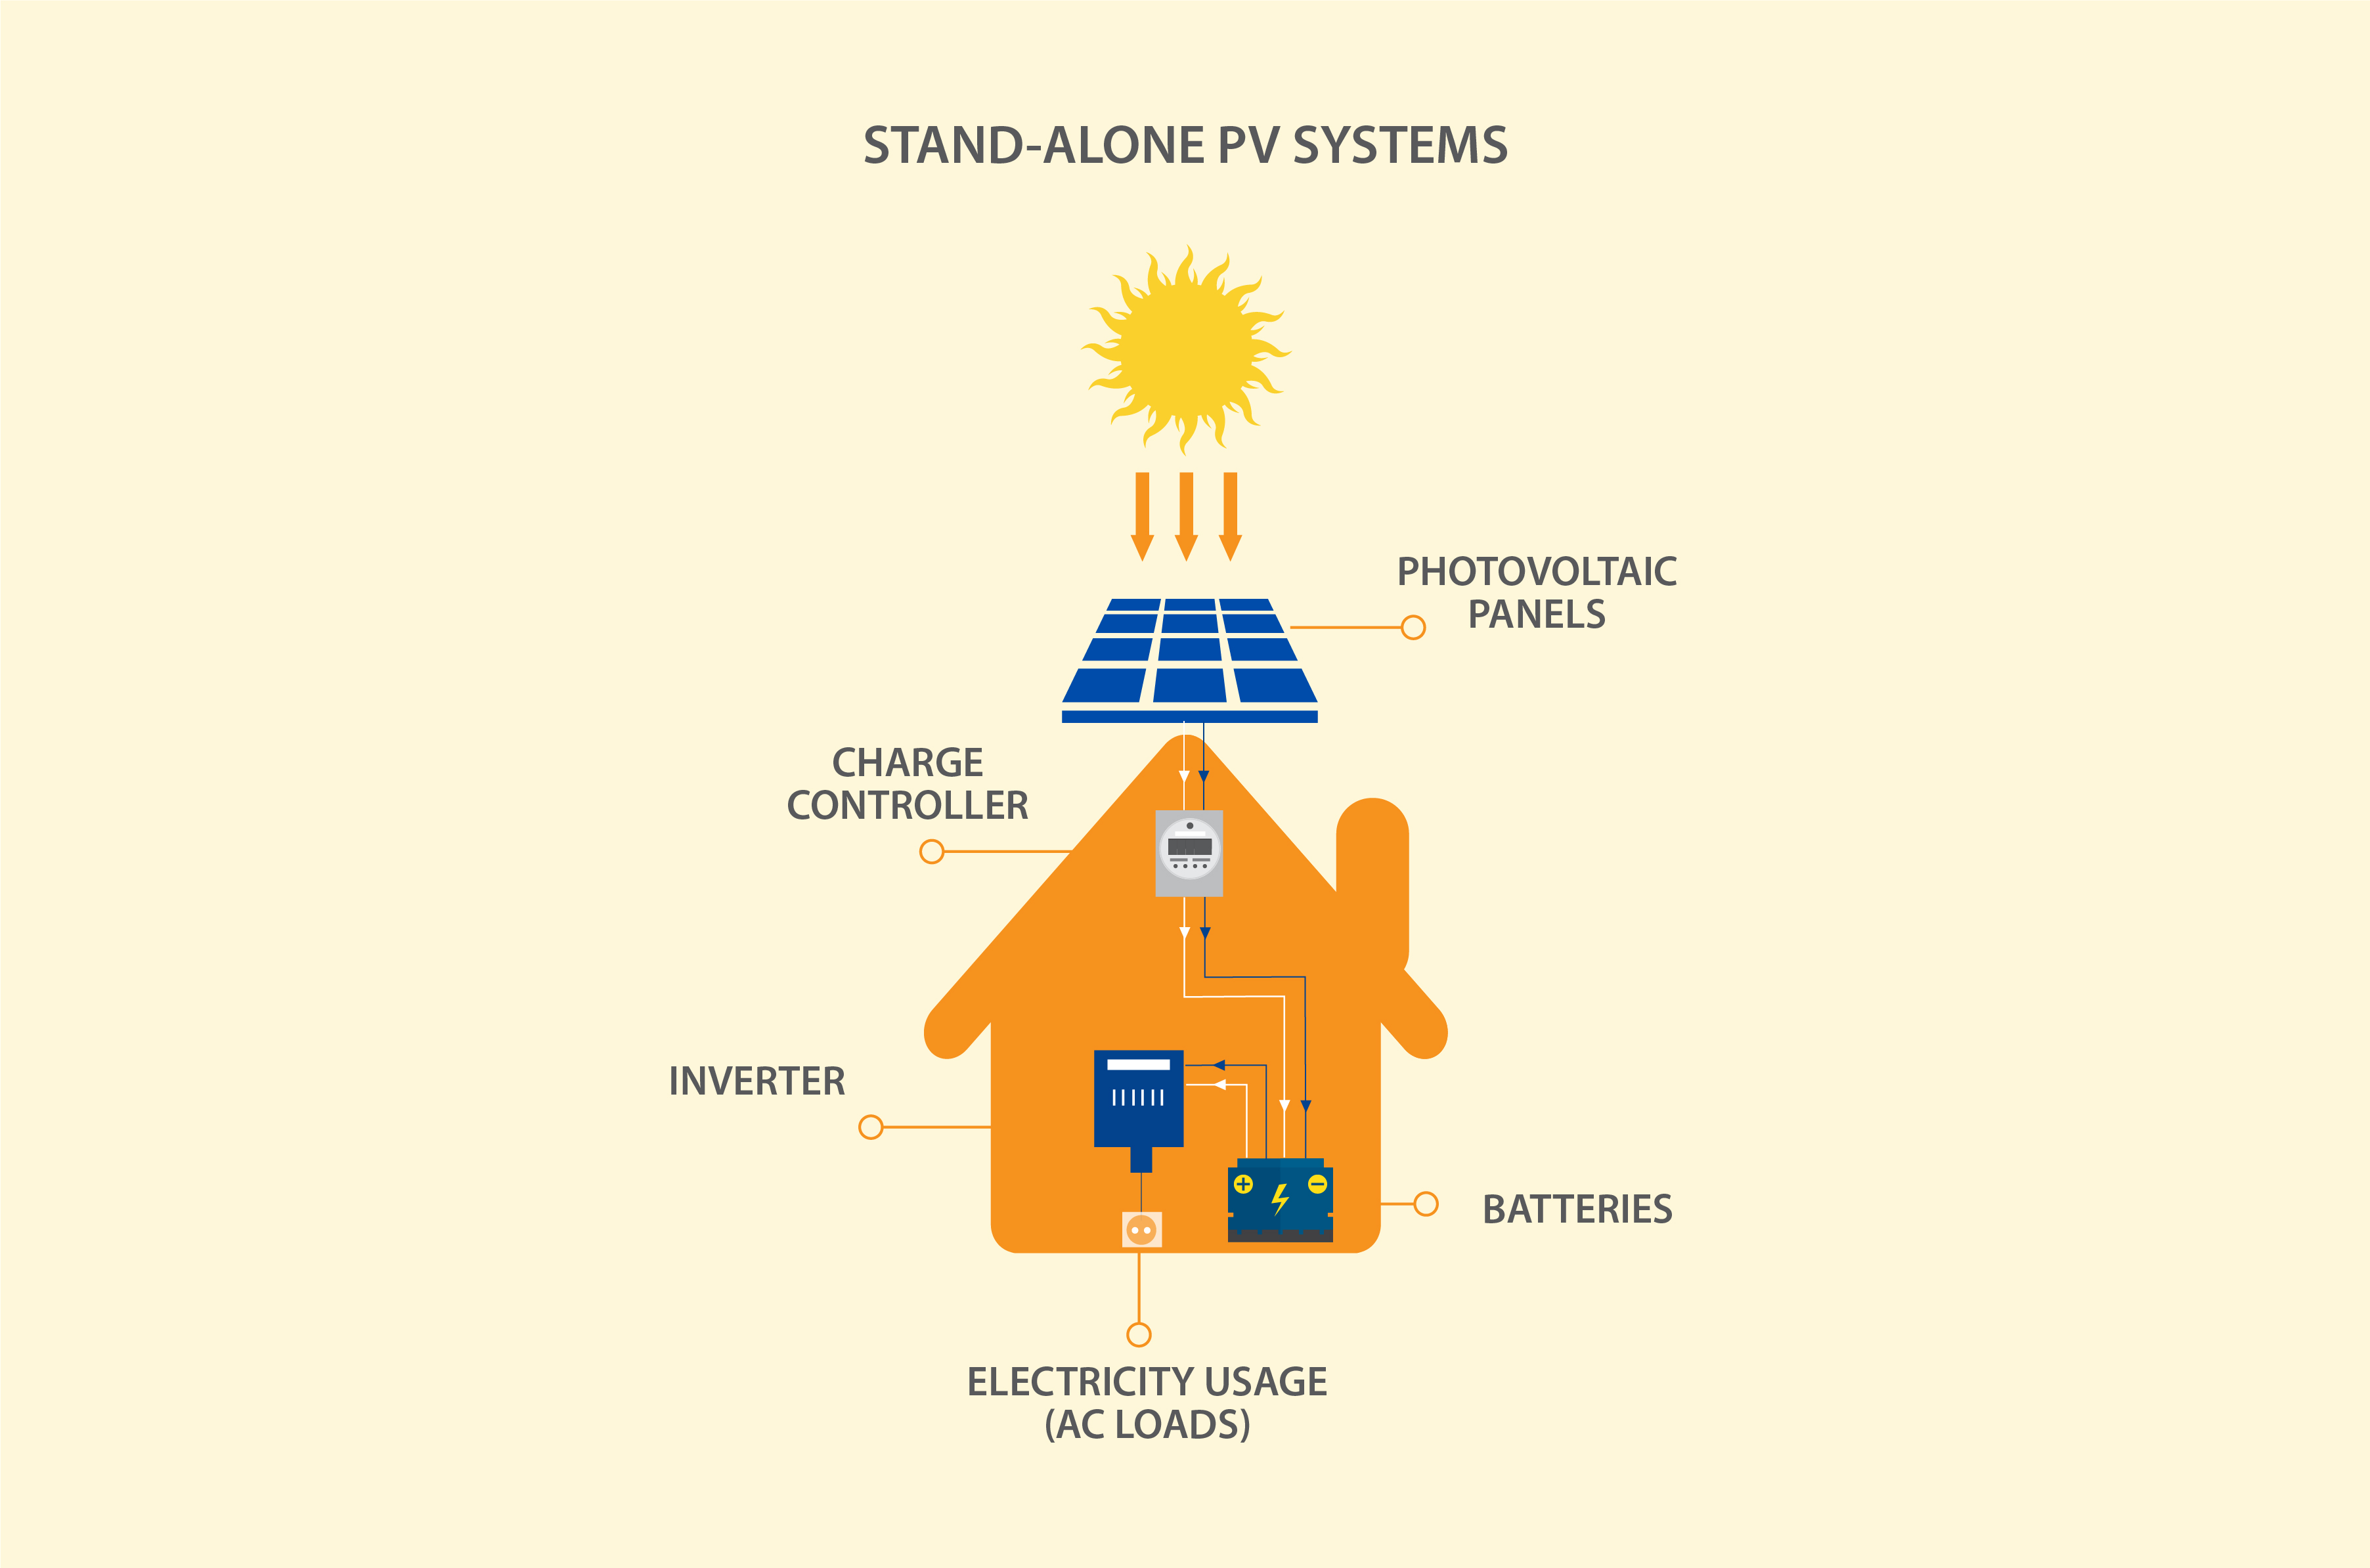 STAND-ALONE (AUTONOMOUS) PV SYSTEMS